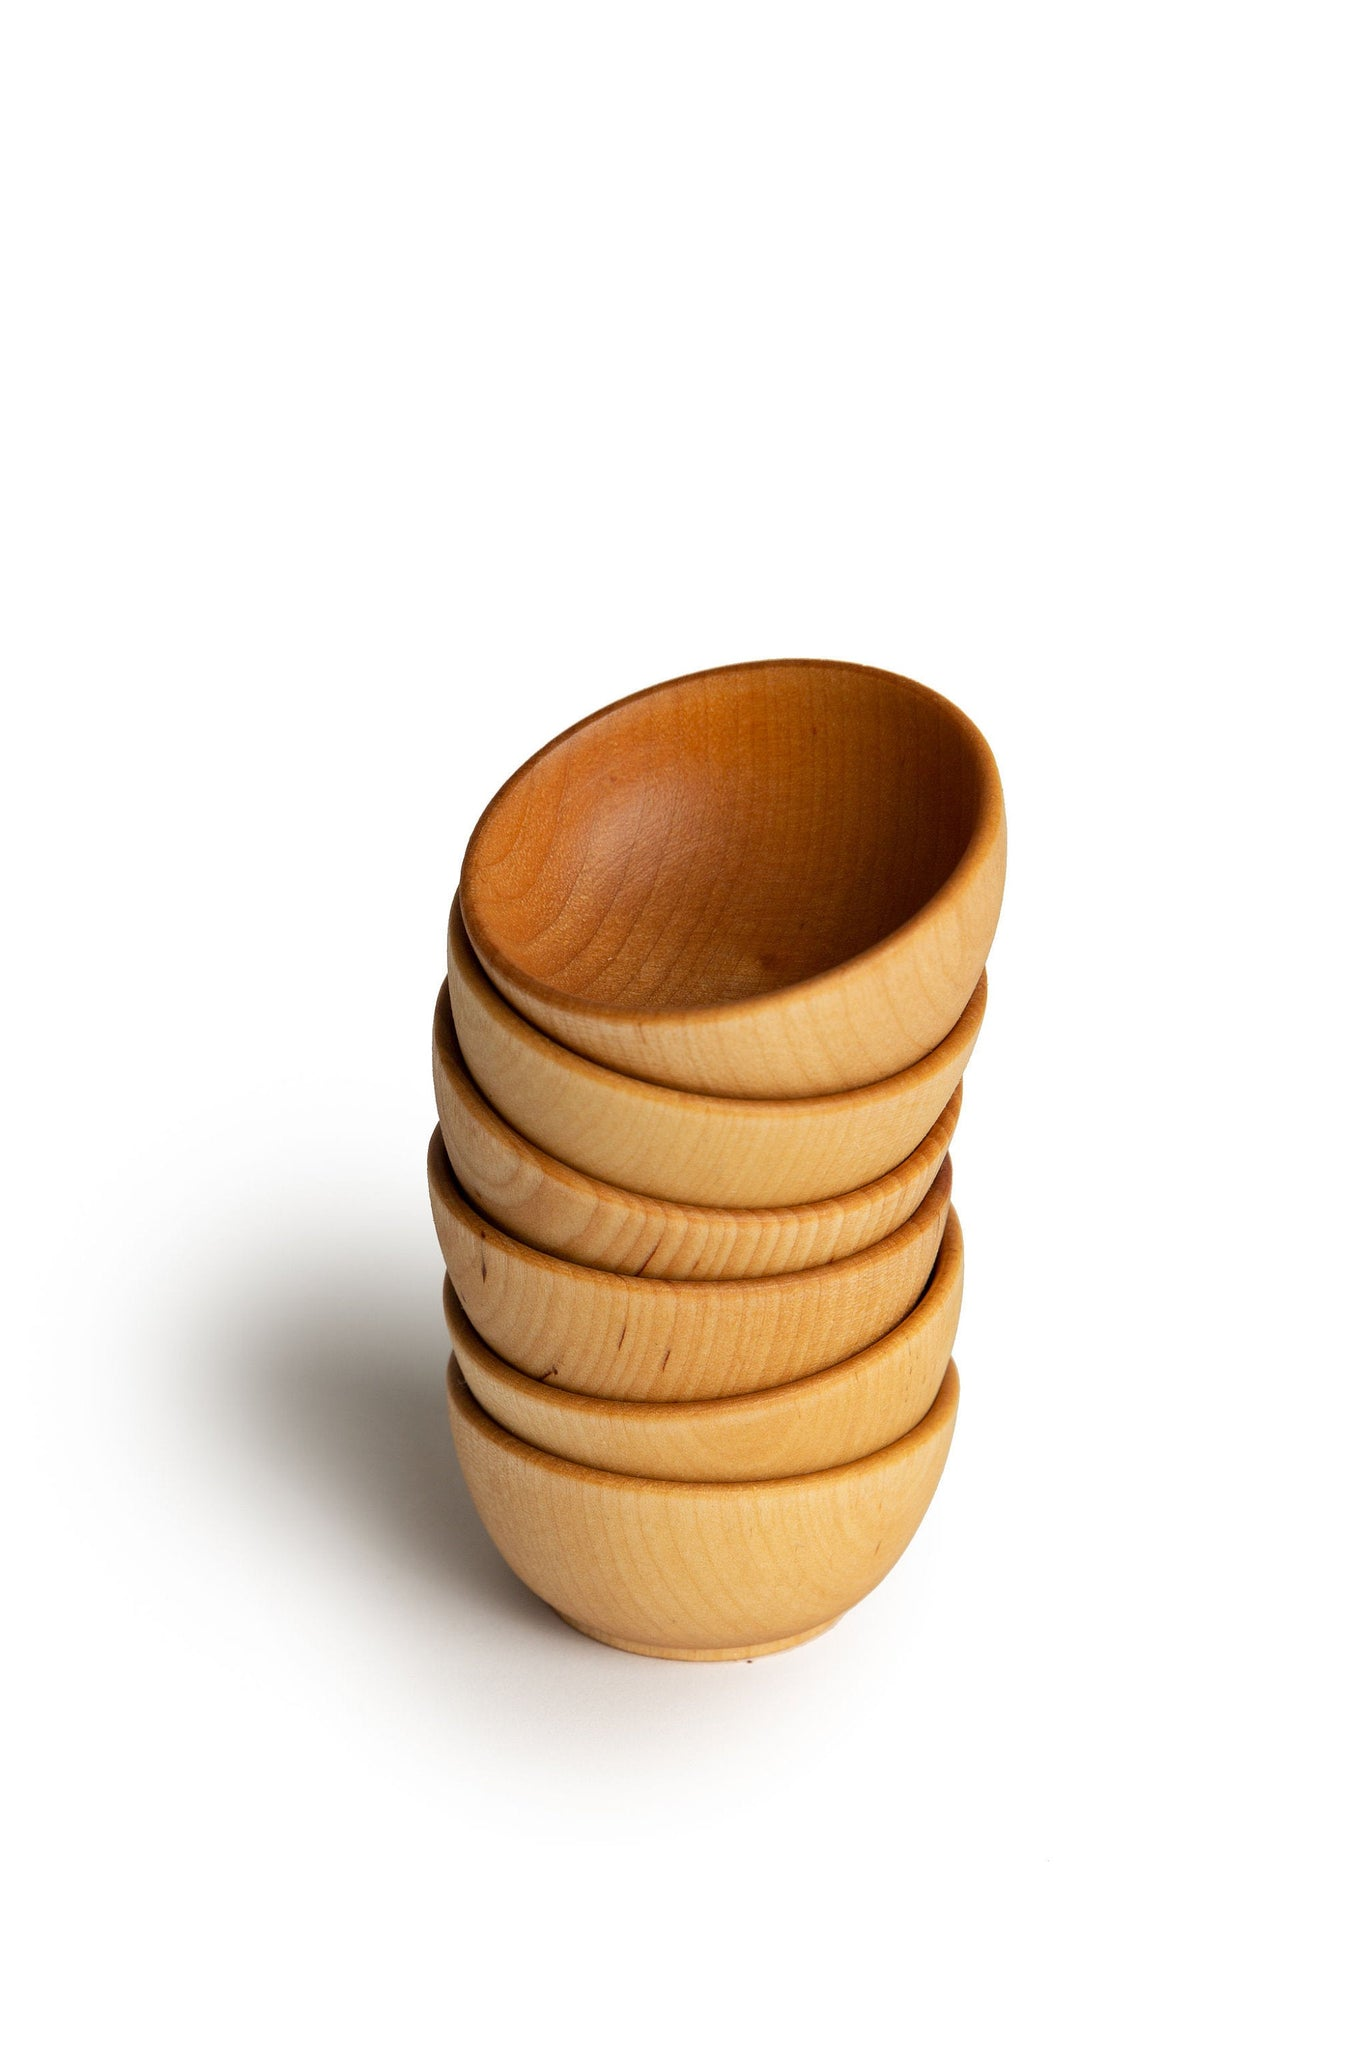 Natural Wooden Stacking Bowls - Set of 6